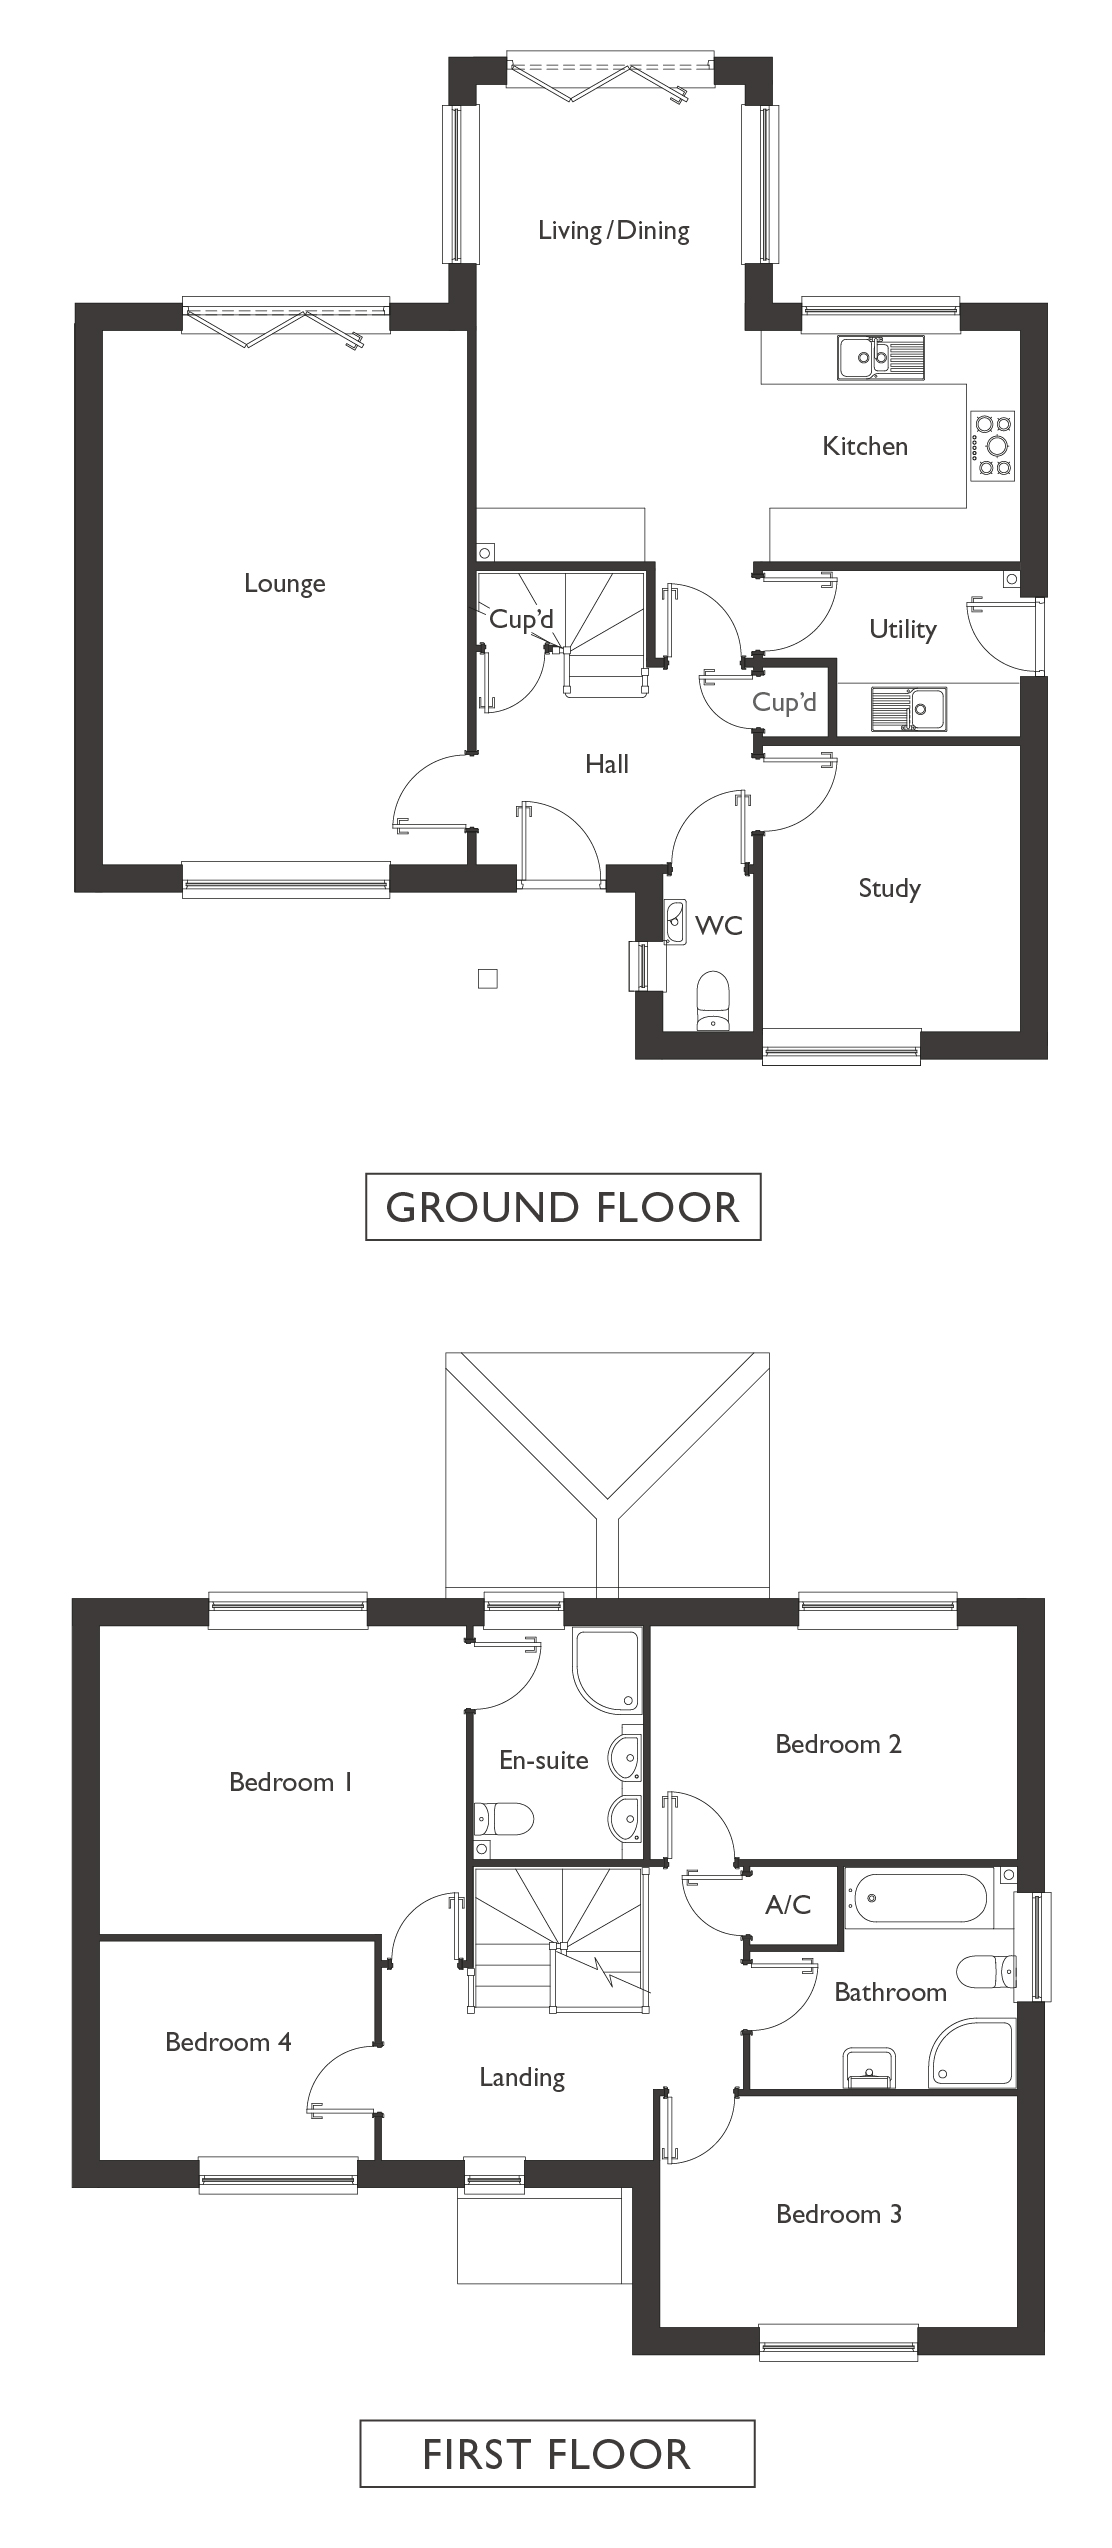 Valley View - Plot 7 - Wrentham - Floor Plans